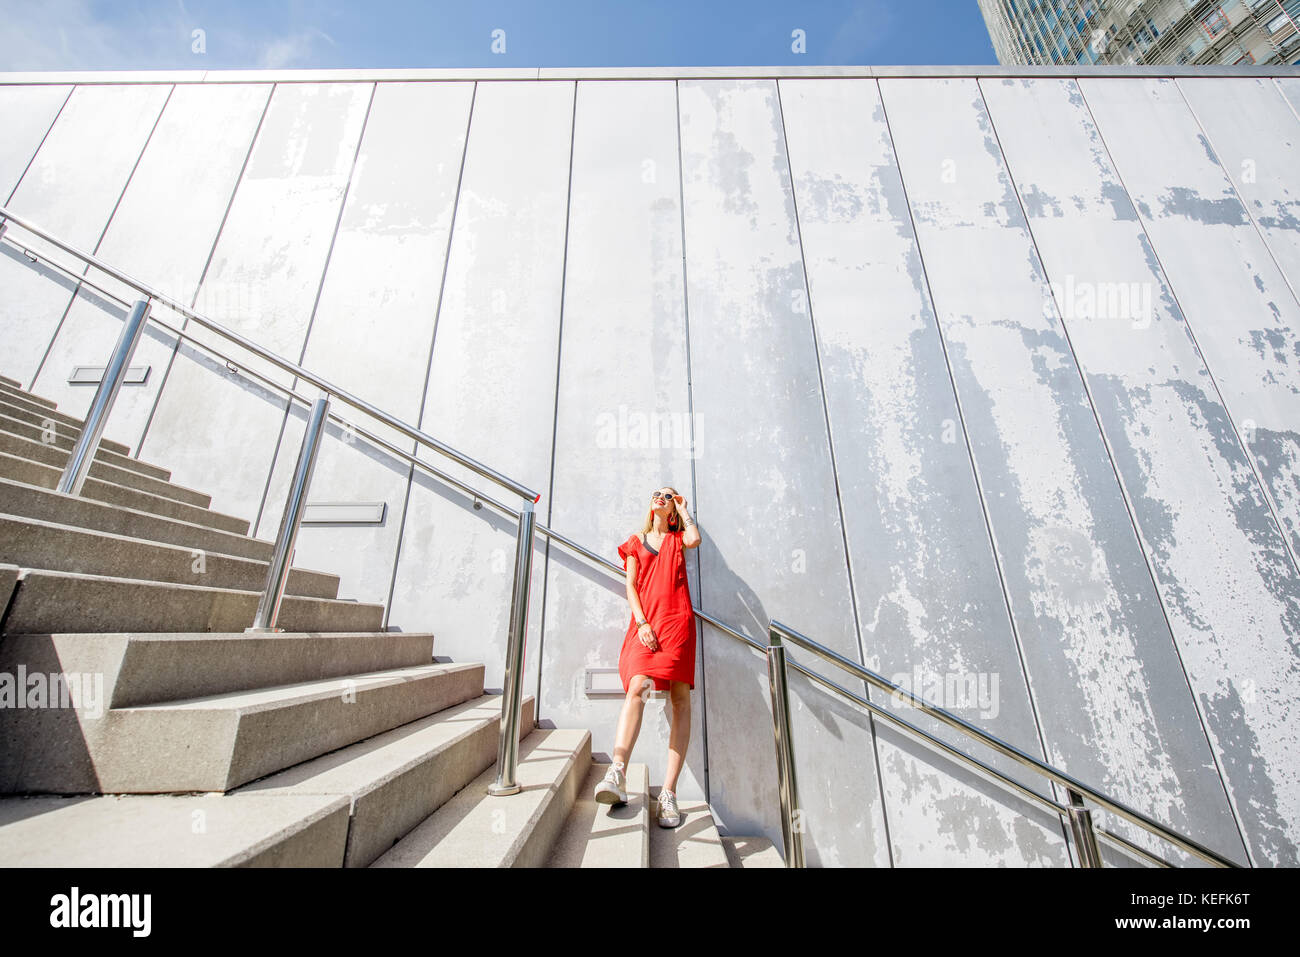 Woman on the stairs - Stock Image